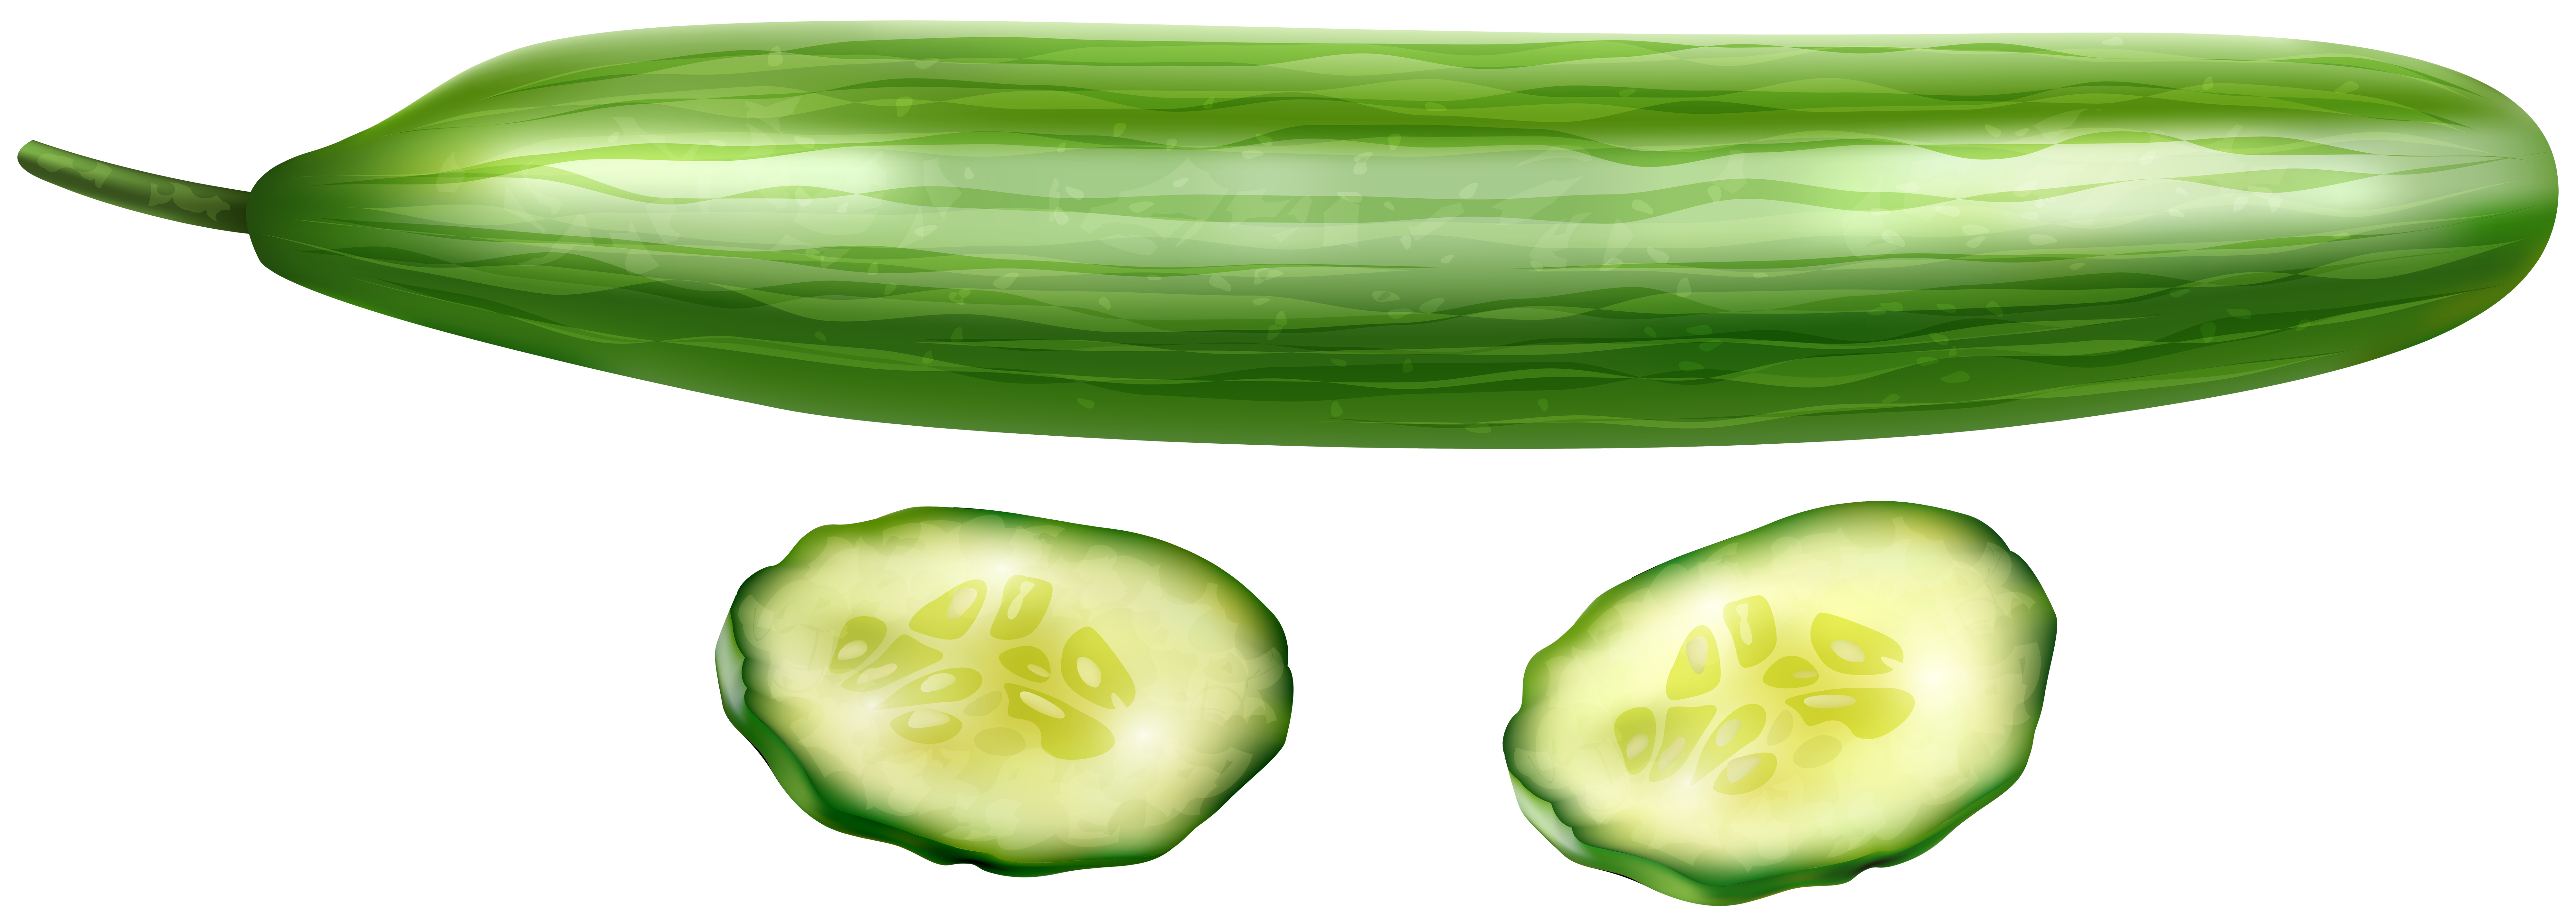 Gourd clipart transparent View Art Free Yopriceville size